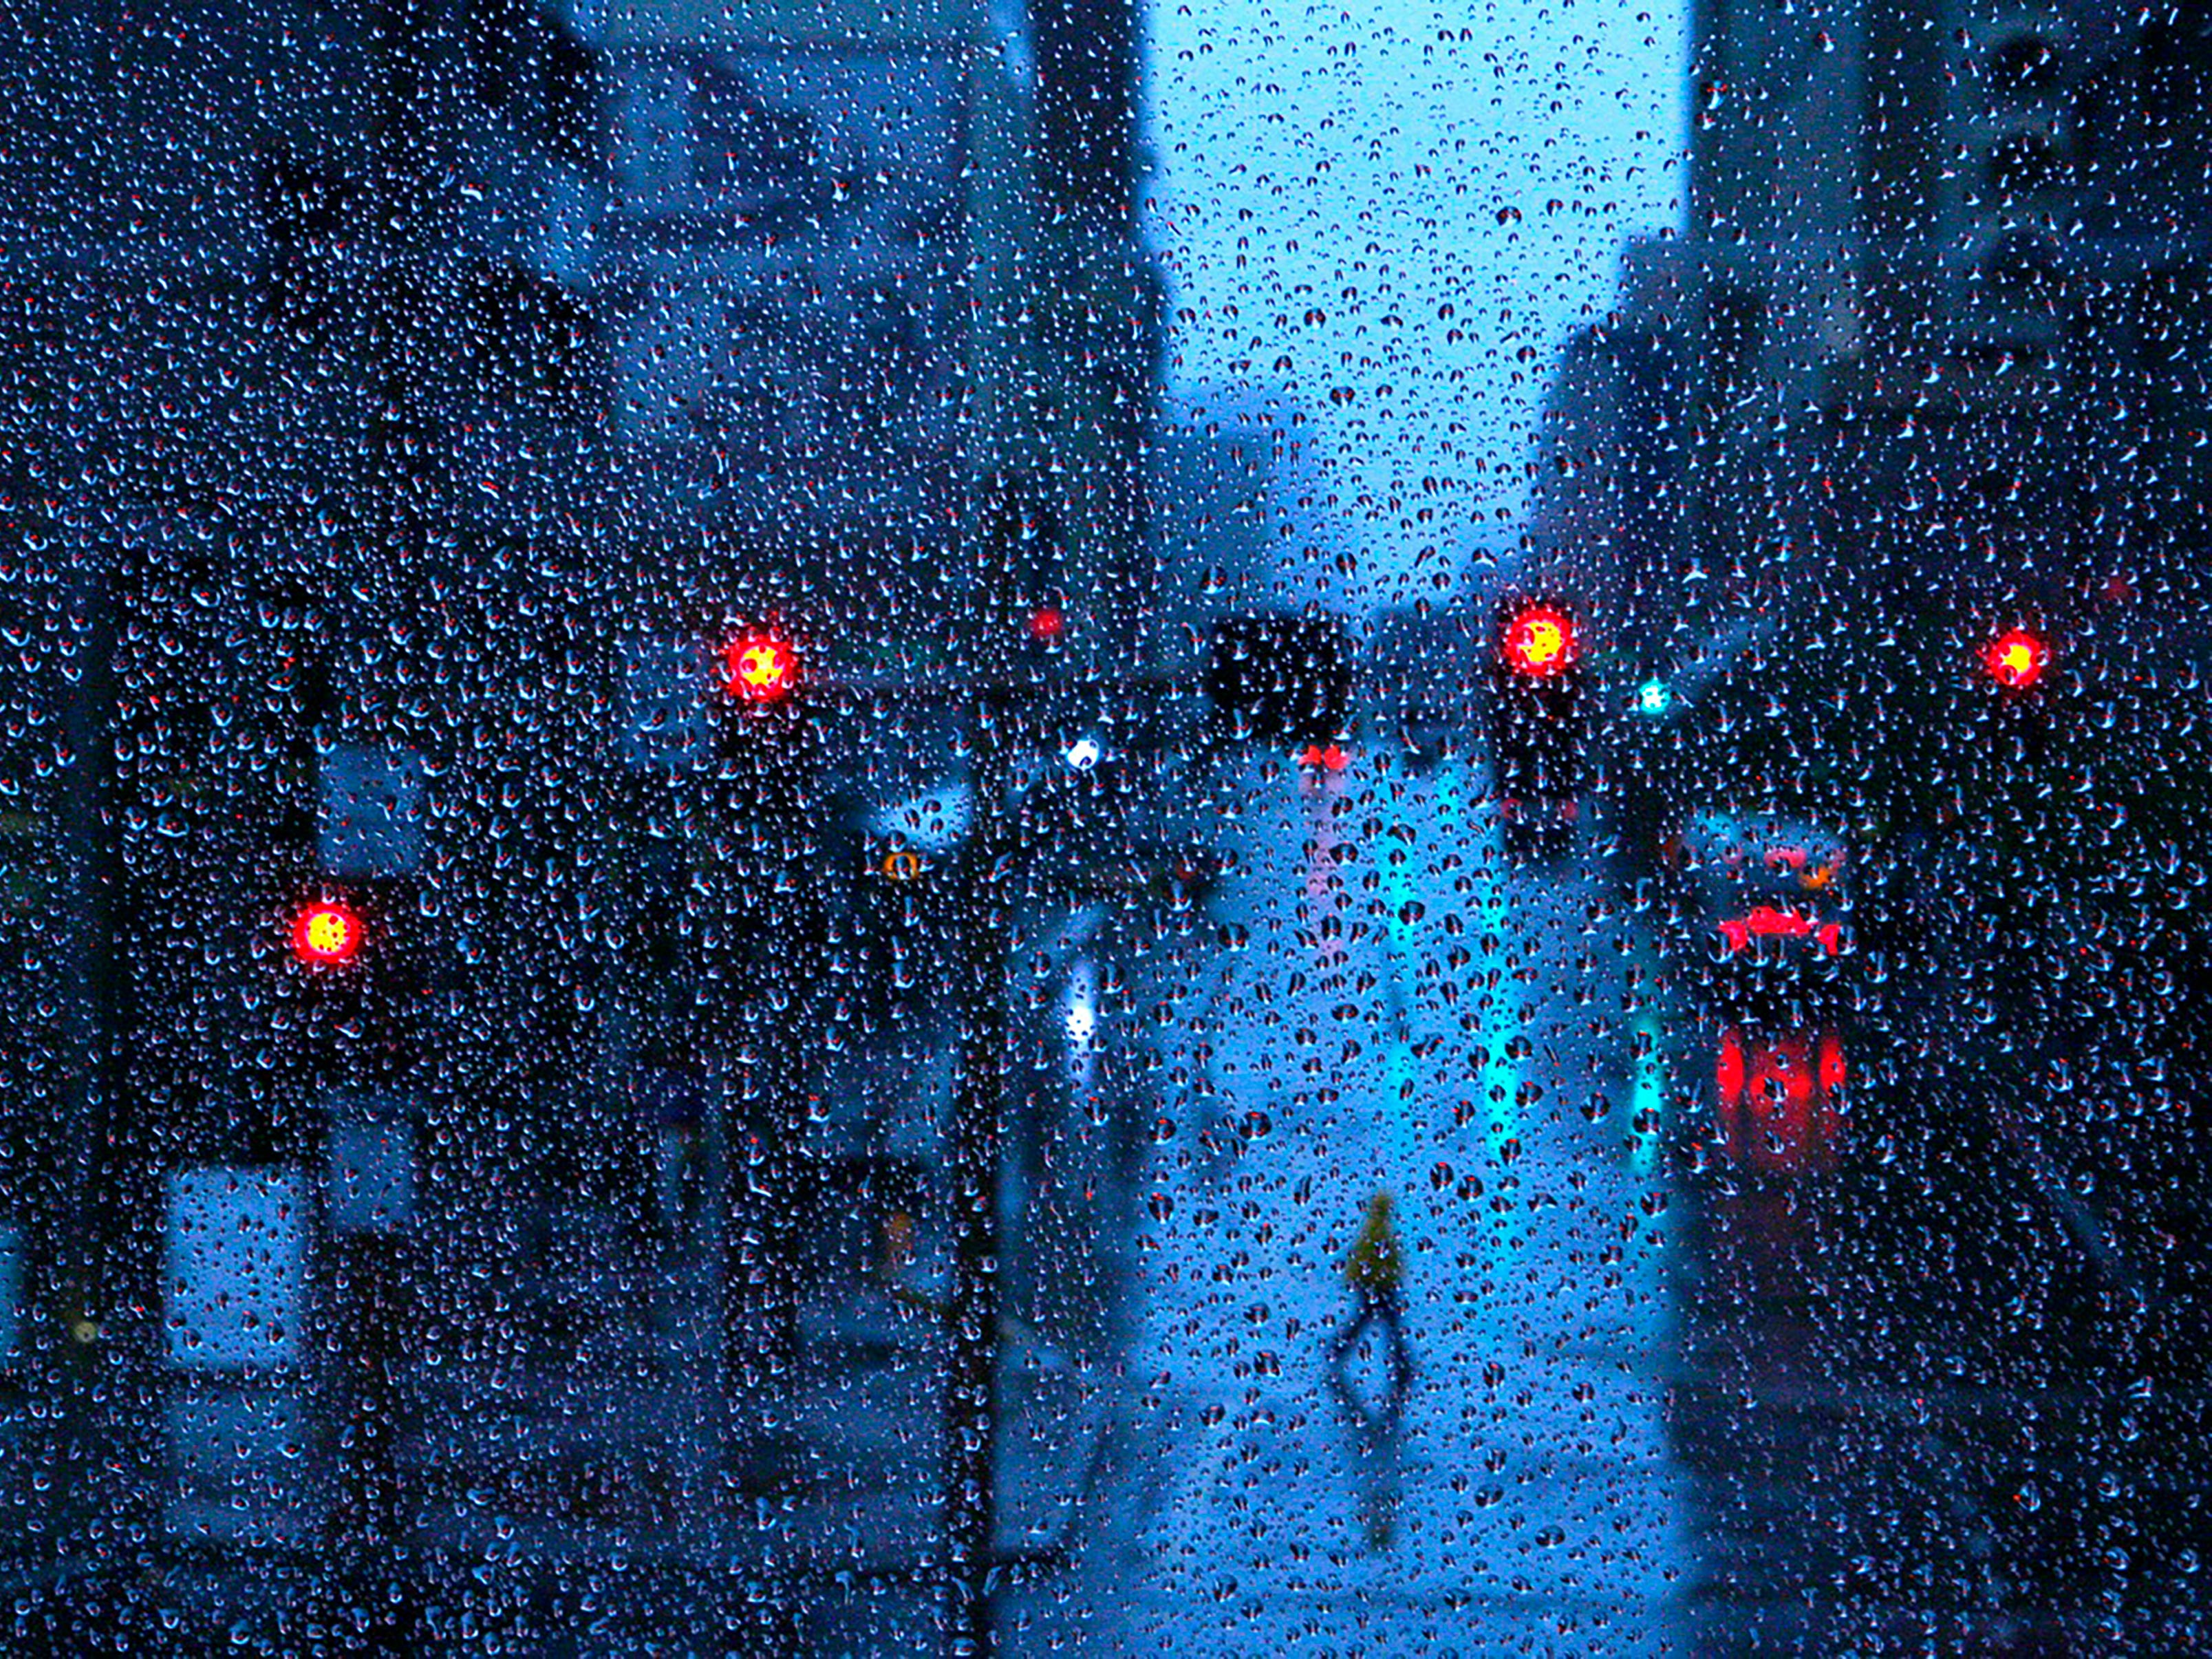 A pedestrian dodges rain drops as they cross Central in downtown Phoenix.